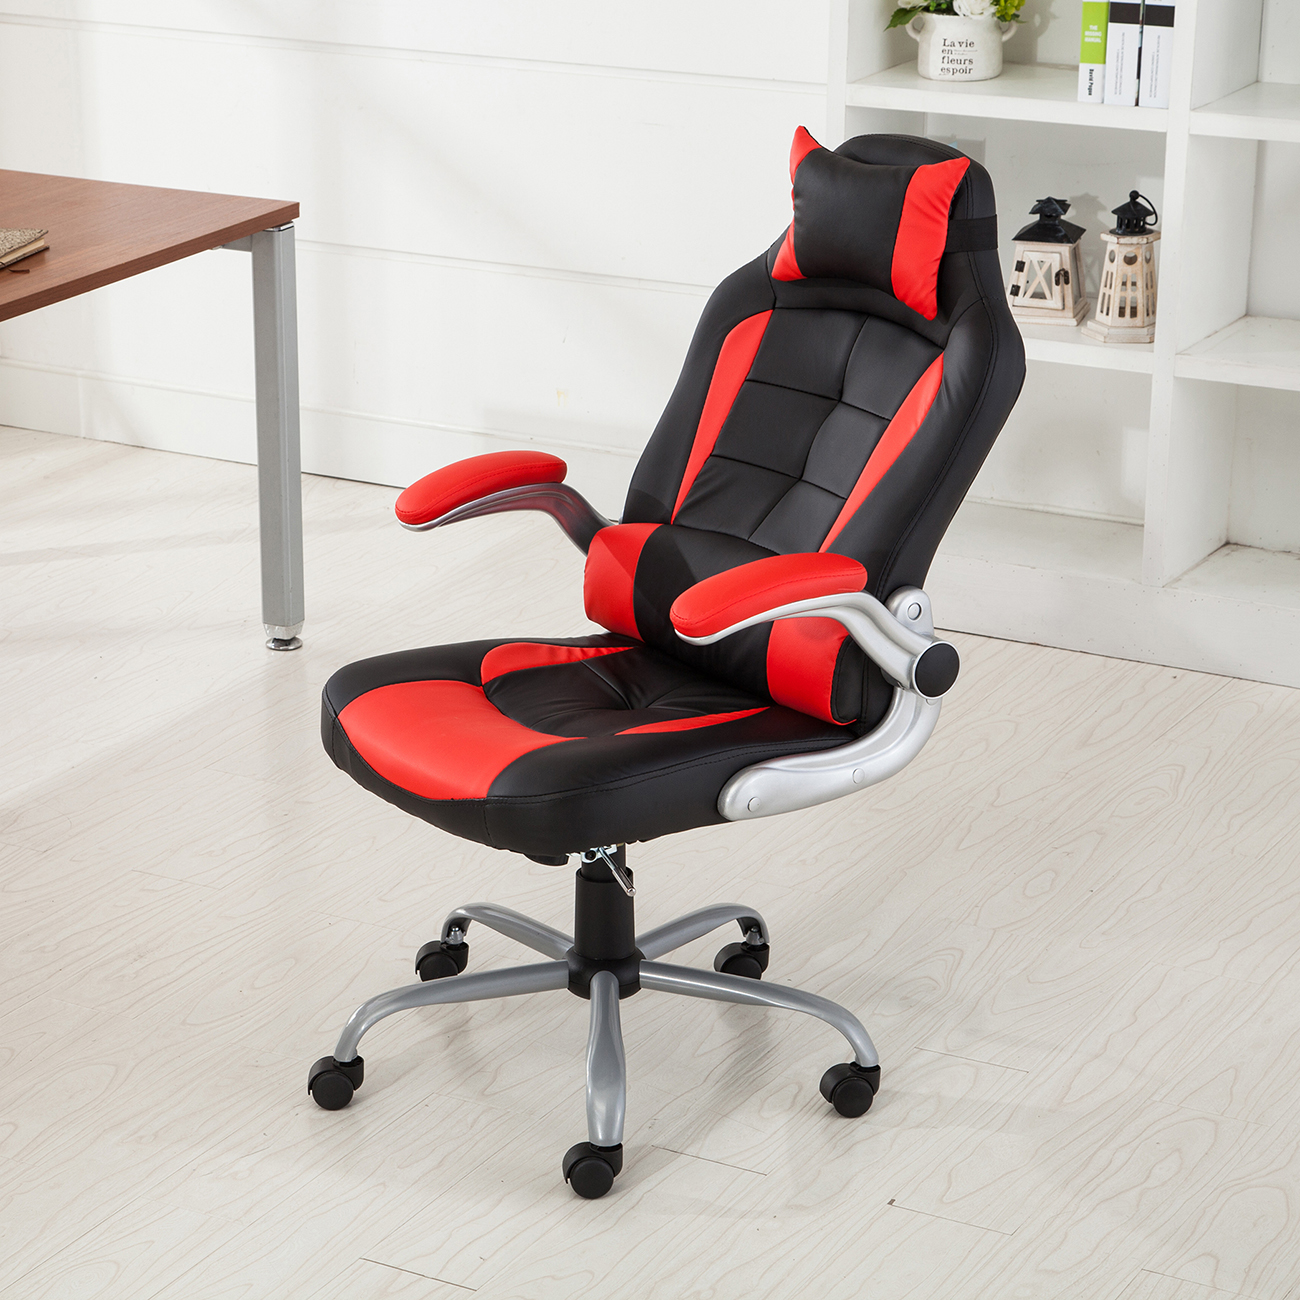 reclining gaming chair zero gravity recliner reviews uk racing office back game padded headrest pu